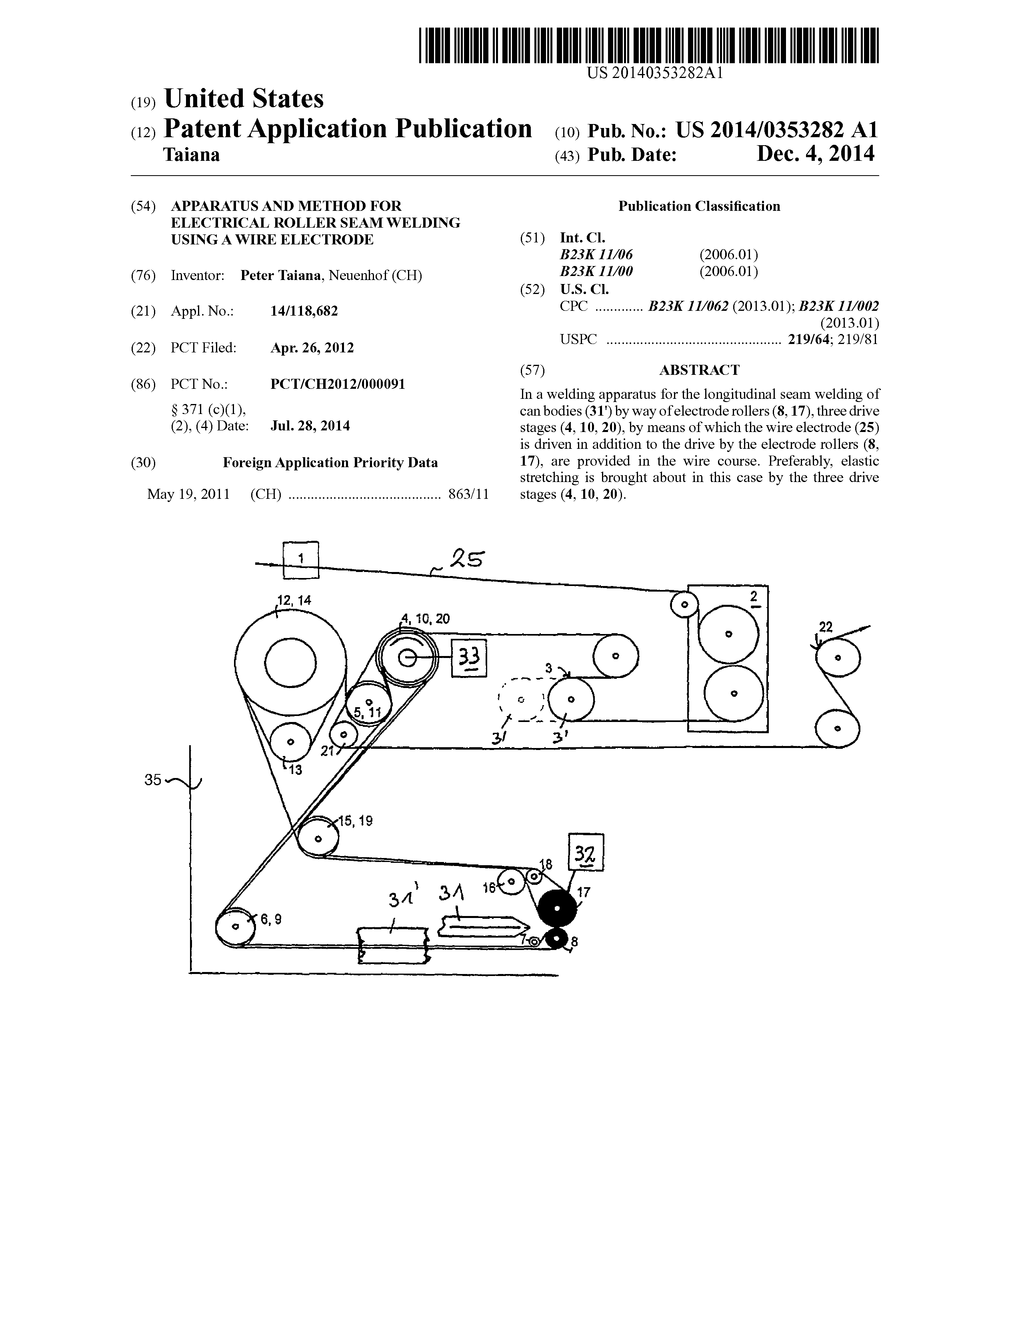 20140353282_01 apparatus and method for electrical roller seam welding using a nx58f5500ss electrode wire diagram at reclaimingppi.co